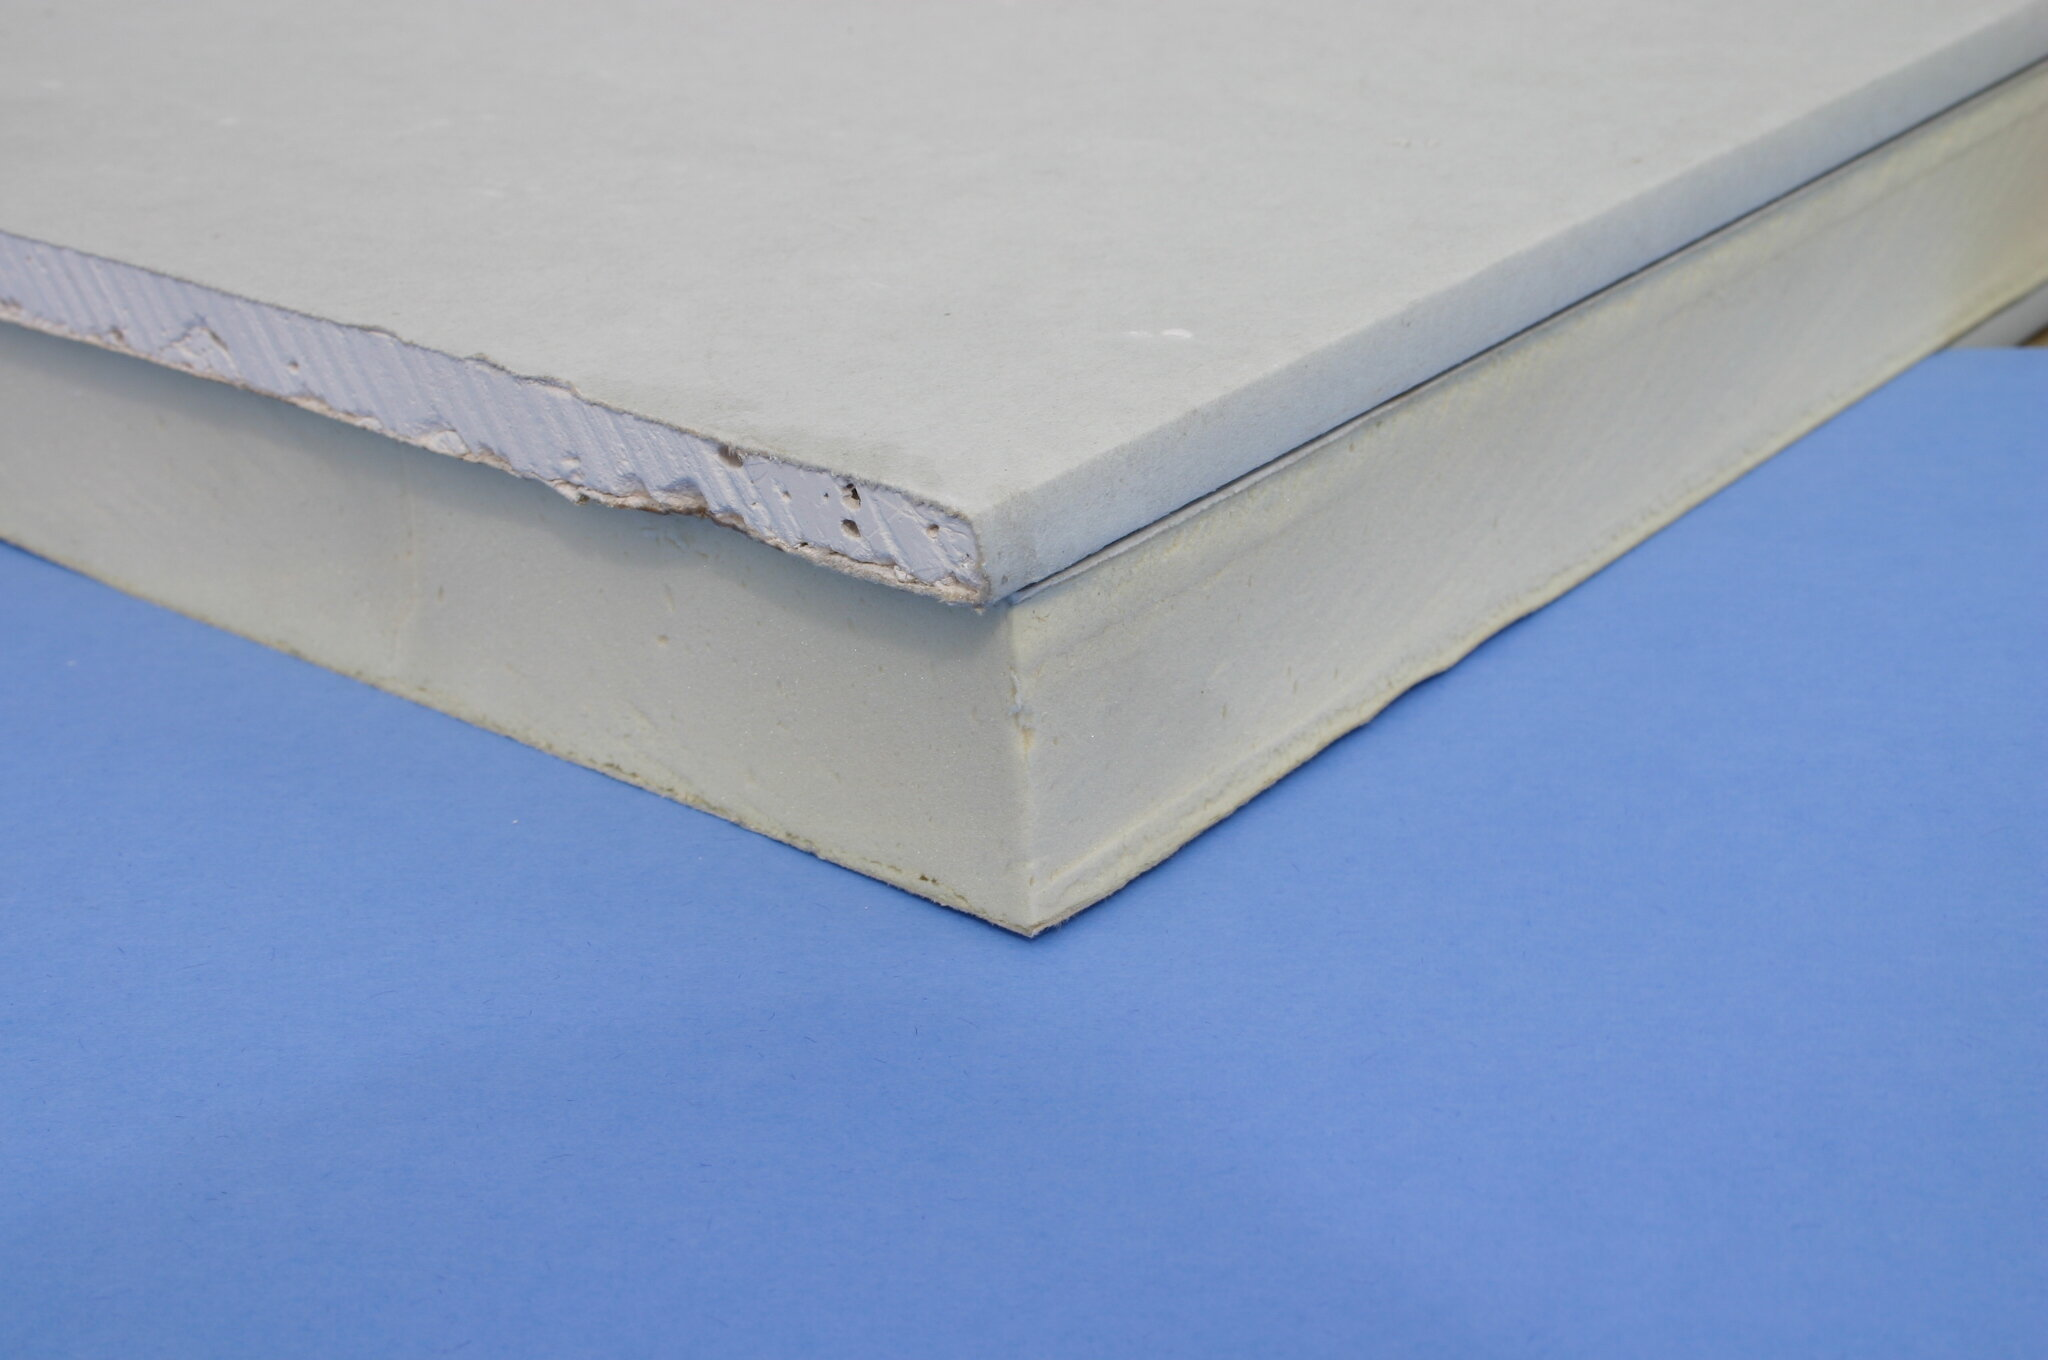 Xtratherm Insulated Plasterboard 50mm - 2438 x 1200mm